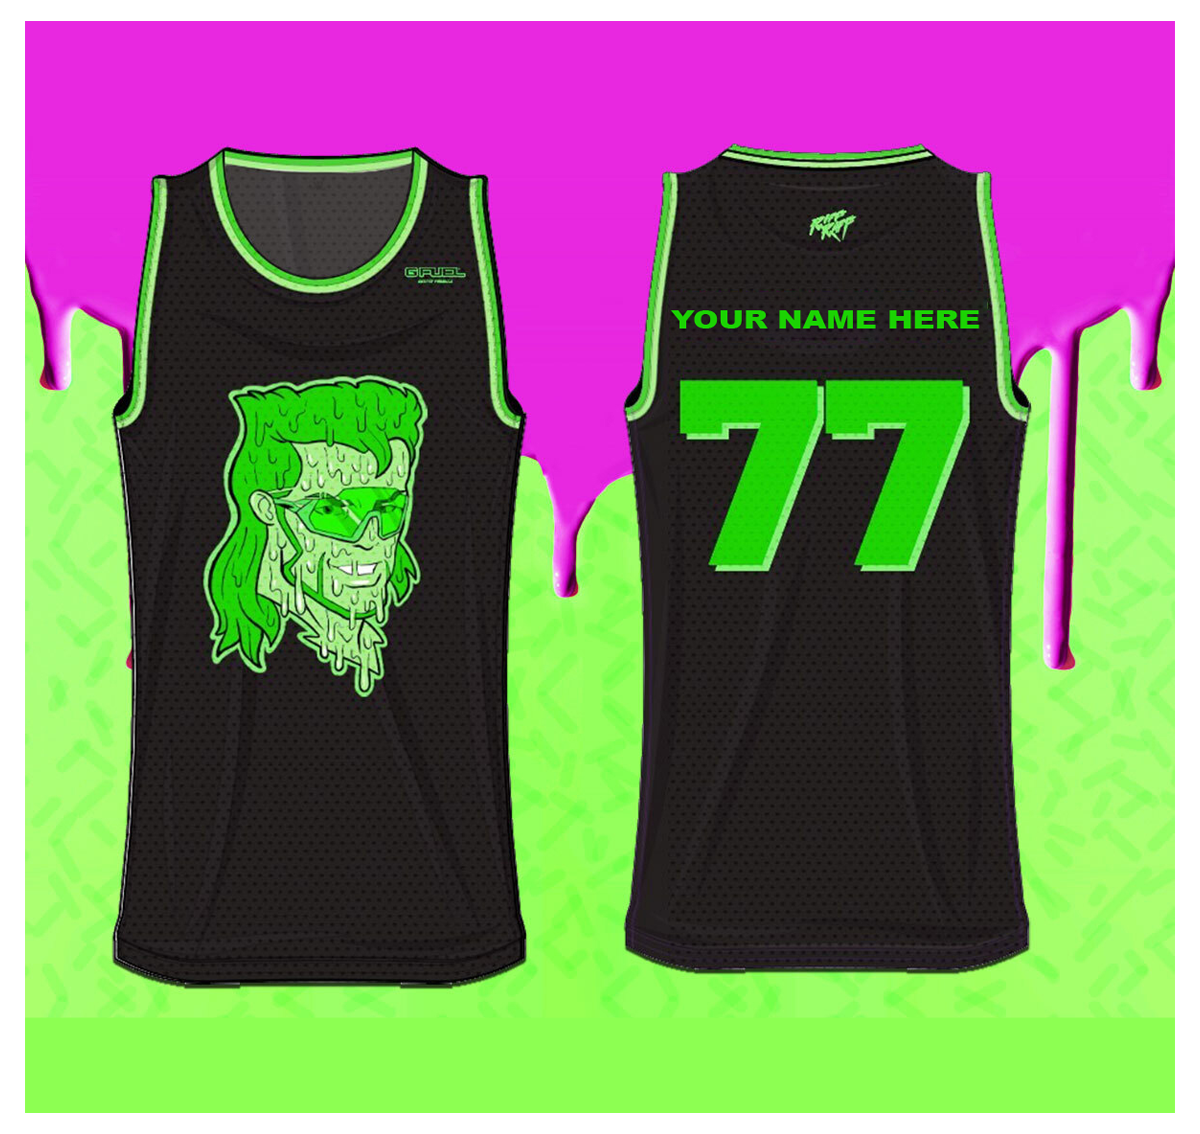 DALE DAN TONY #77 JERSEY (SLiME GREEN) (Custom Option Only)